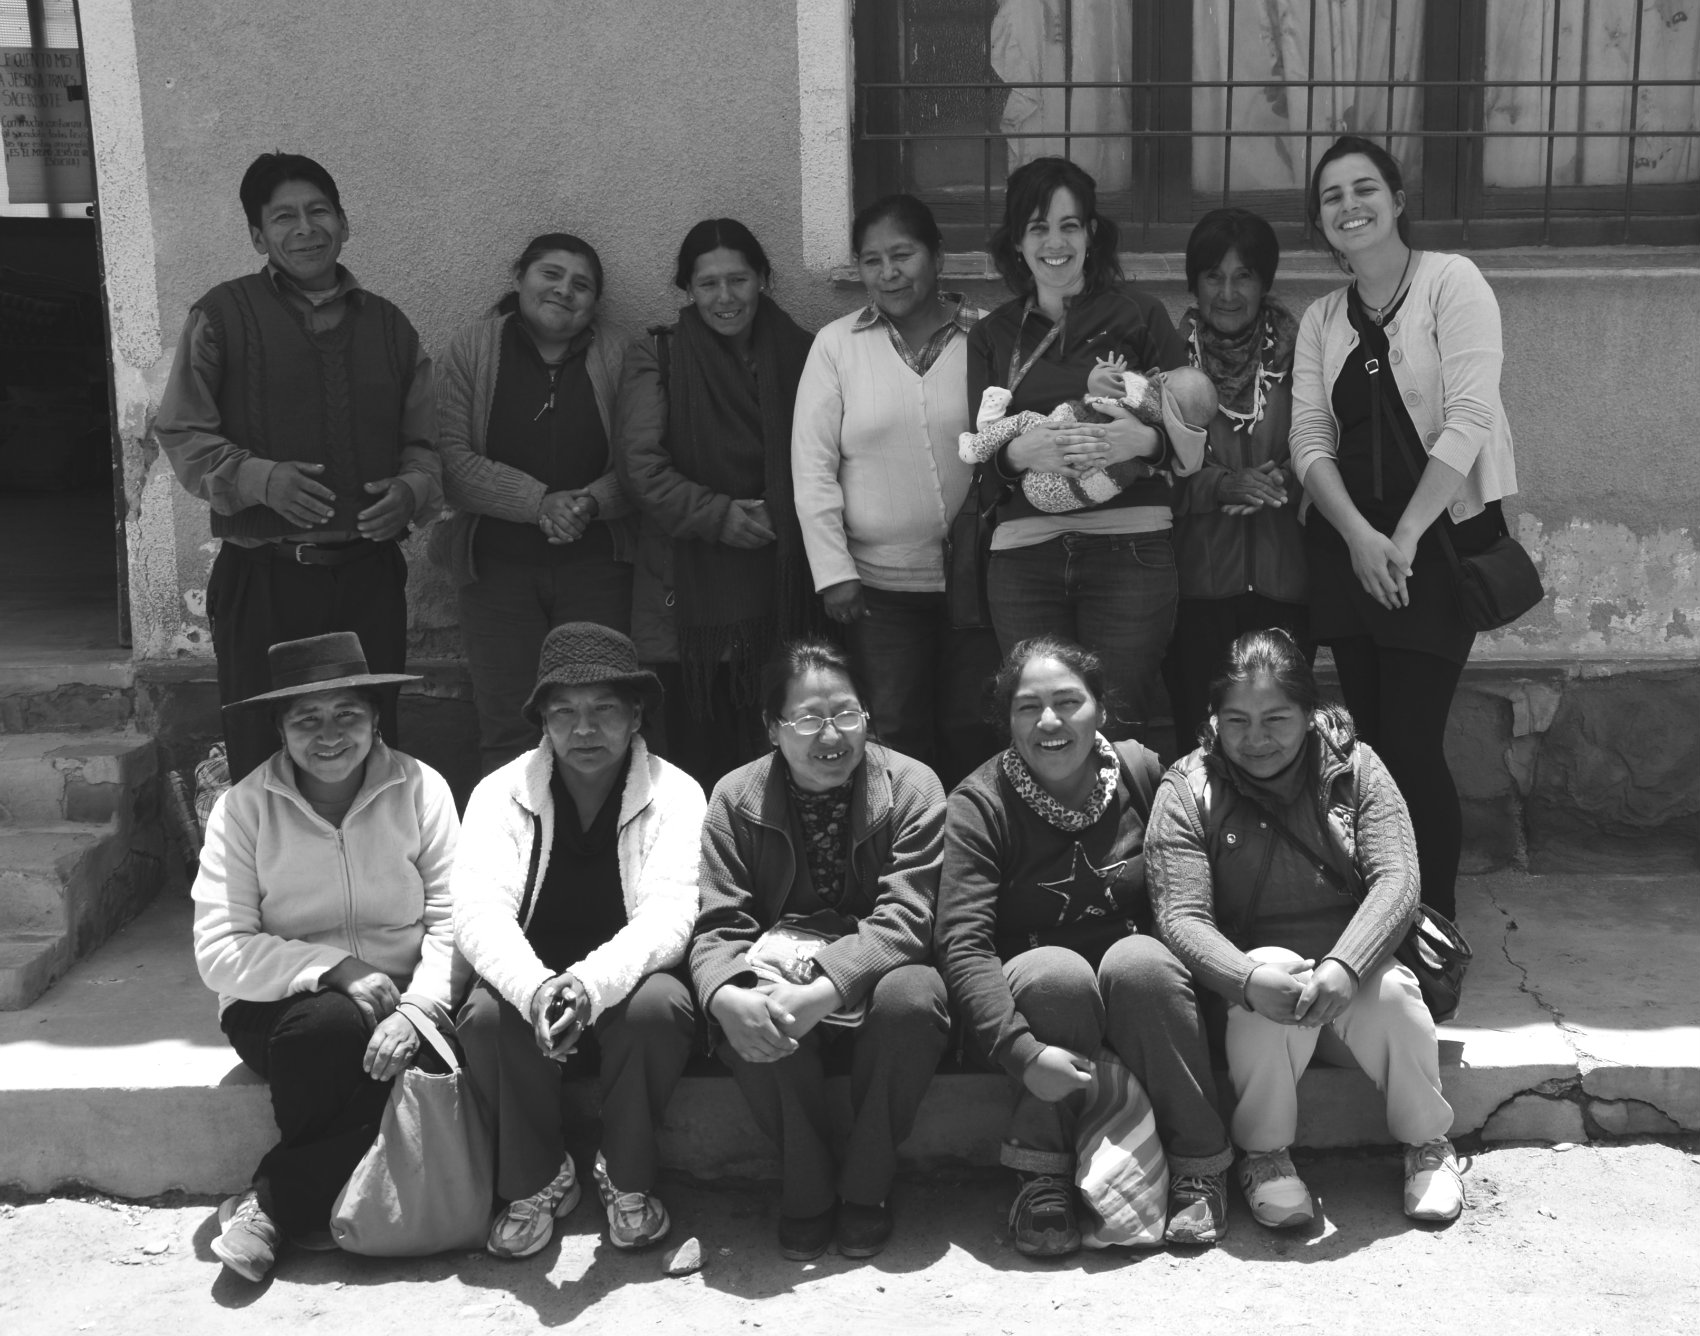 Sandra and Silvana Rossi with the artisans of the OBRA collective in Formosa, Argentina. Photo Source: OBRA Hecho a Mano